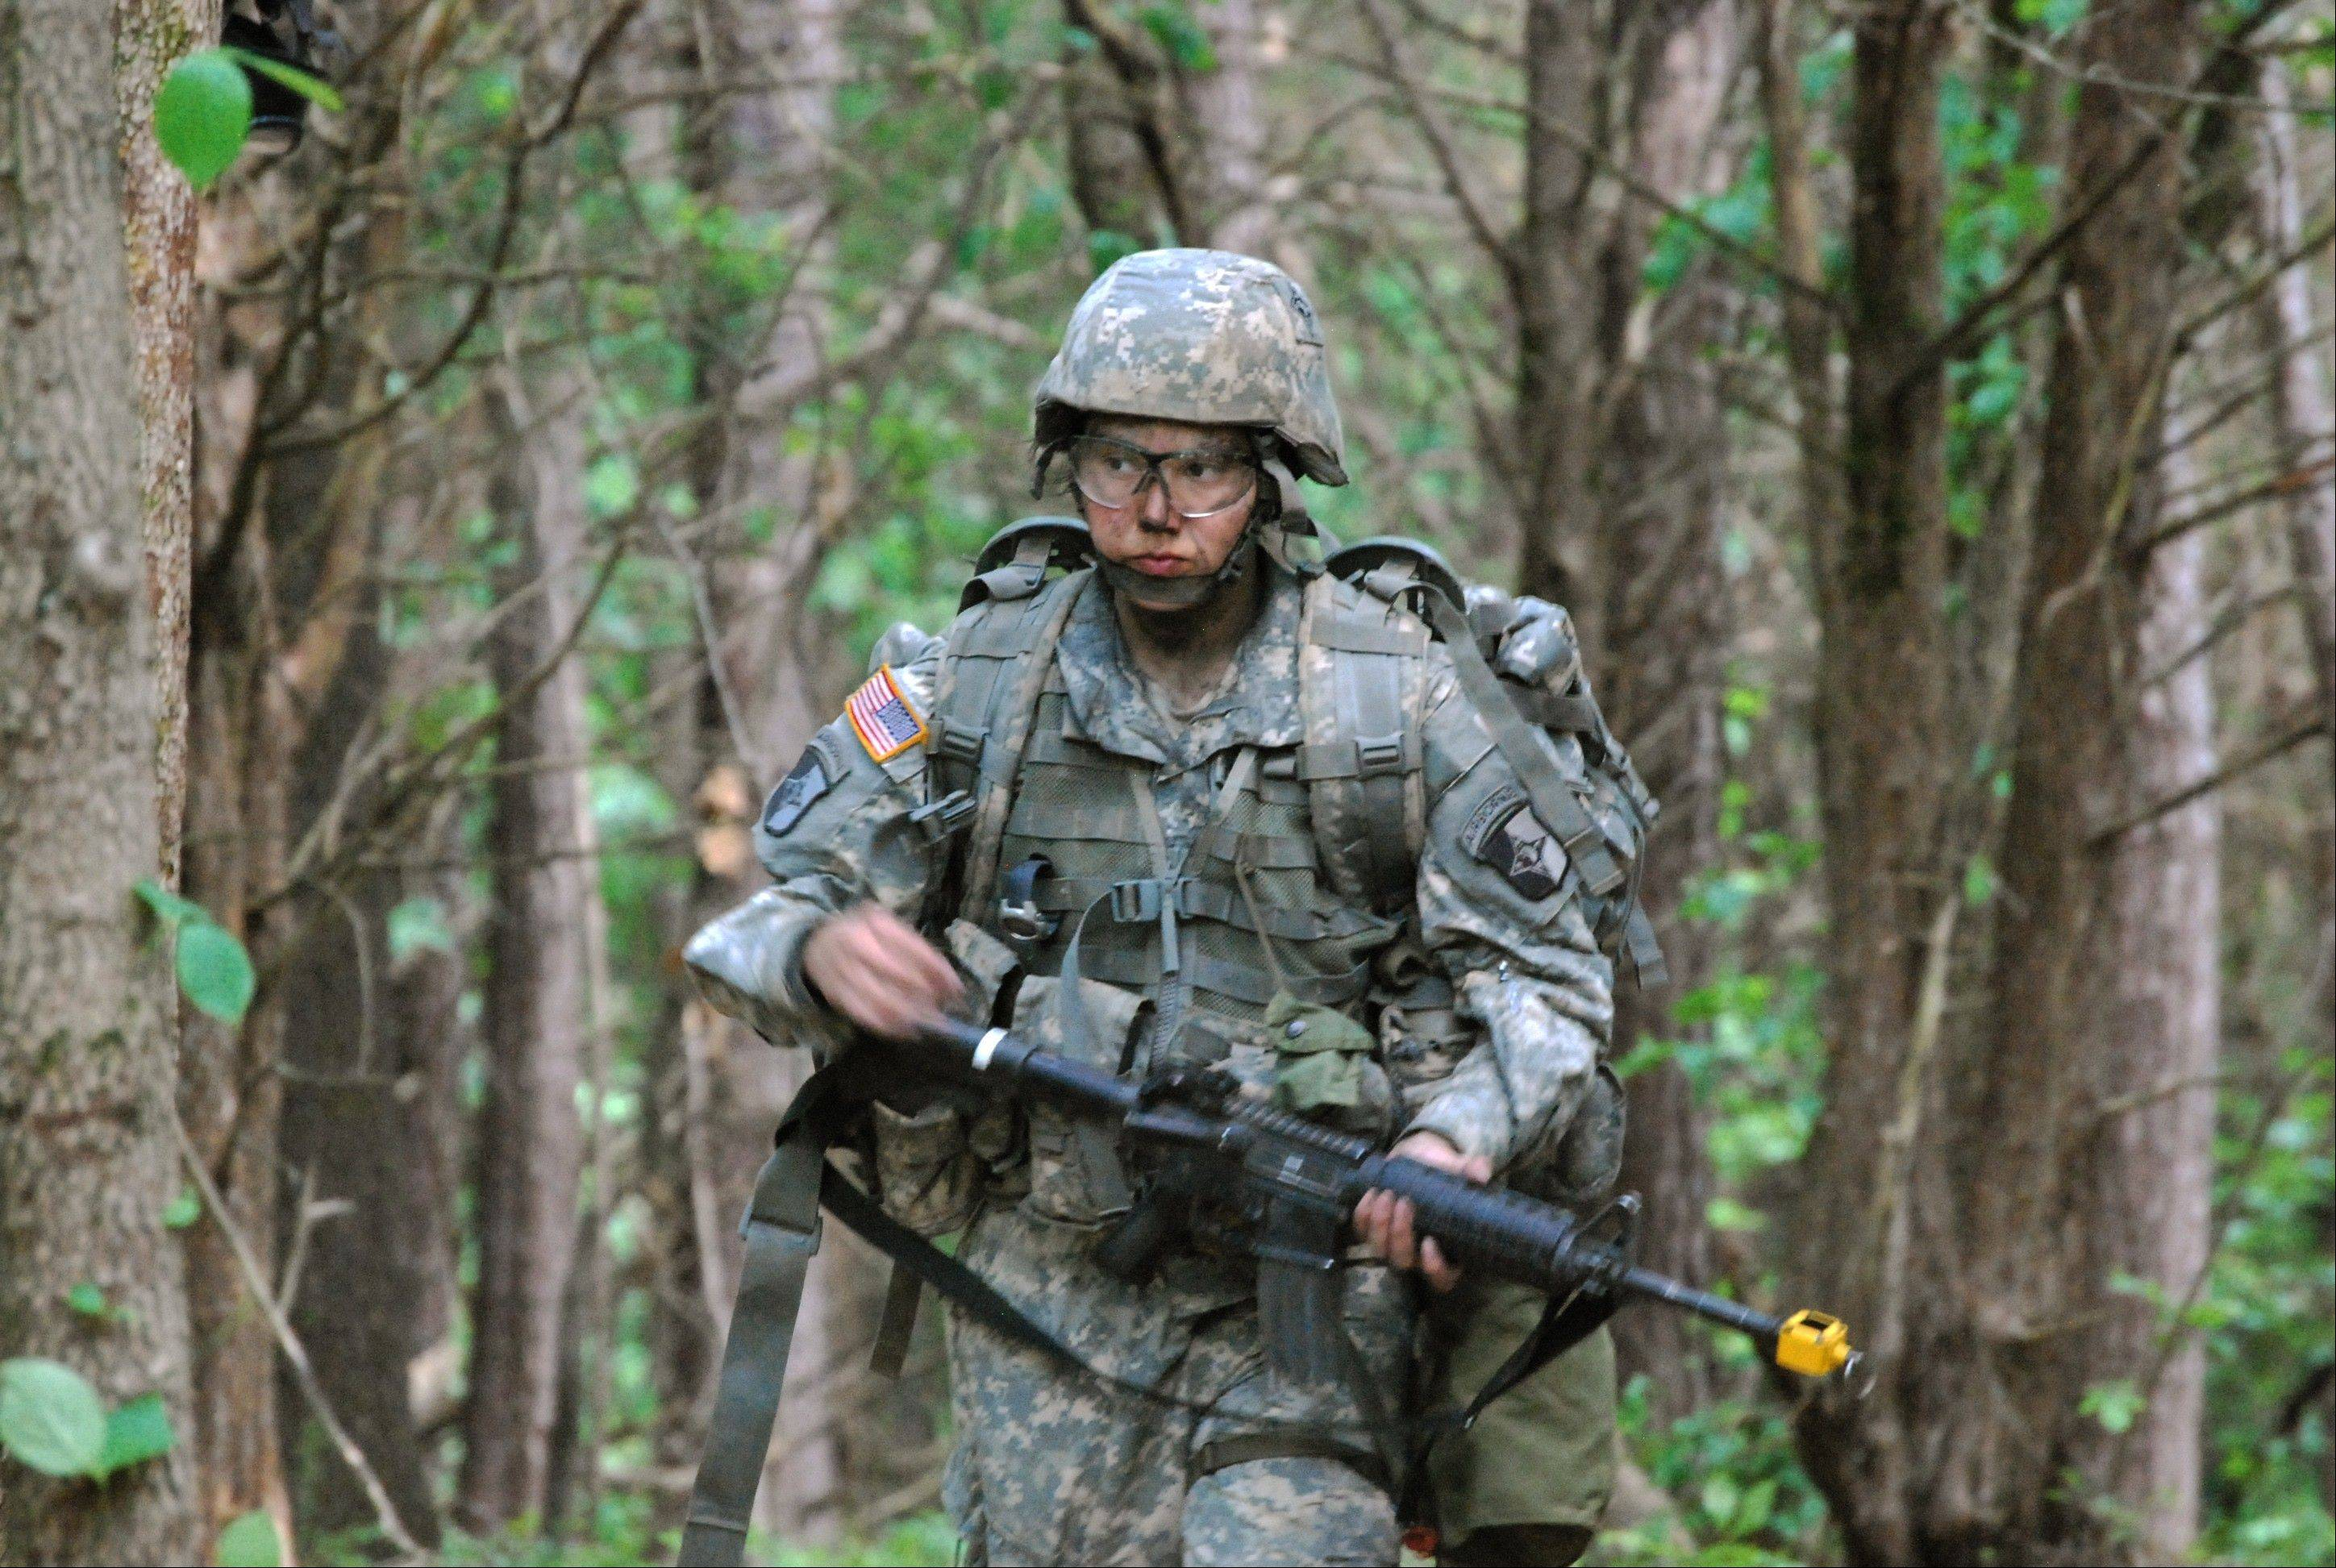 May 9, 2012: Capt. Sara Rodriguez of the 101st Airborne Division walks through the woods during the expert field medical badge testing at Fort Campbell, Ky.